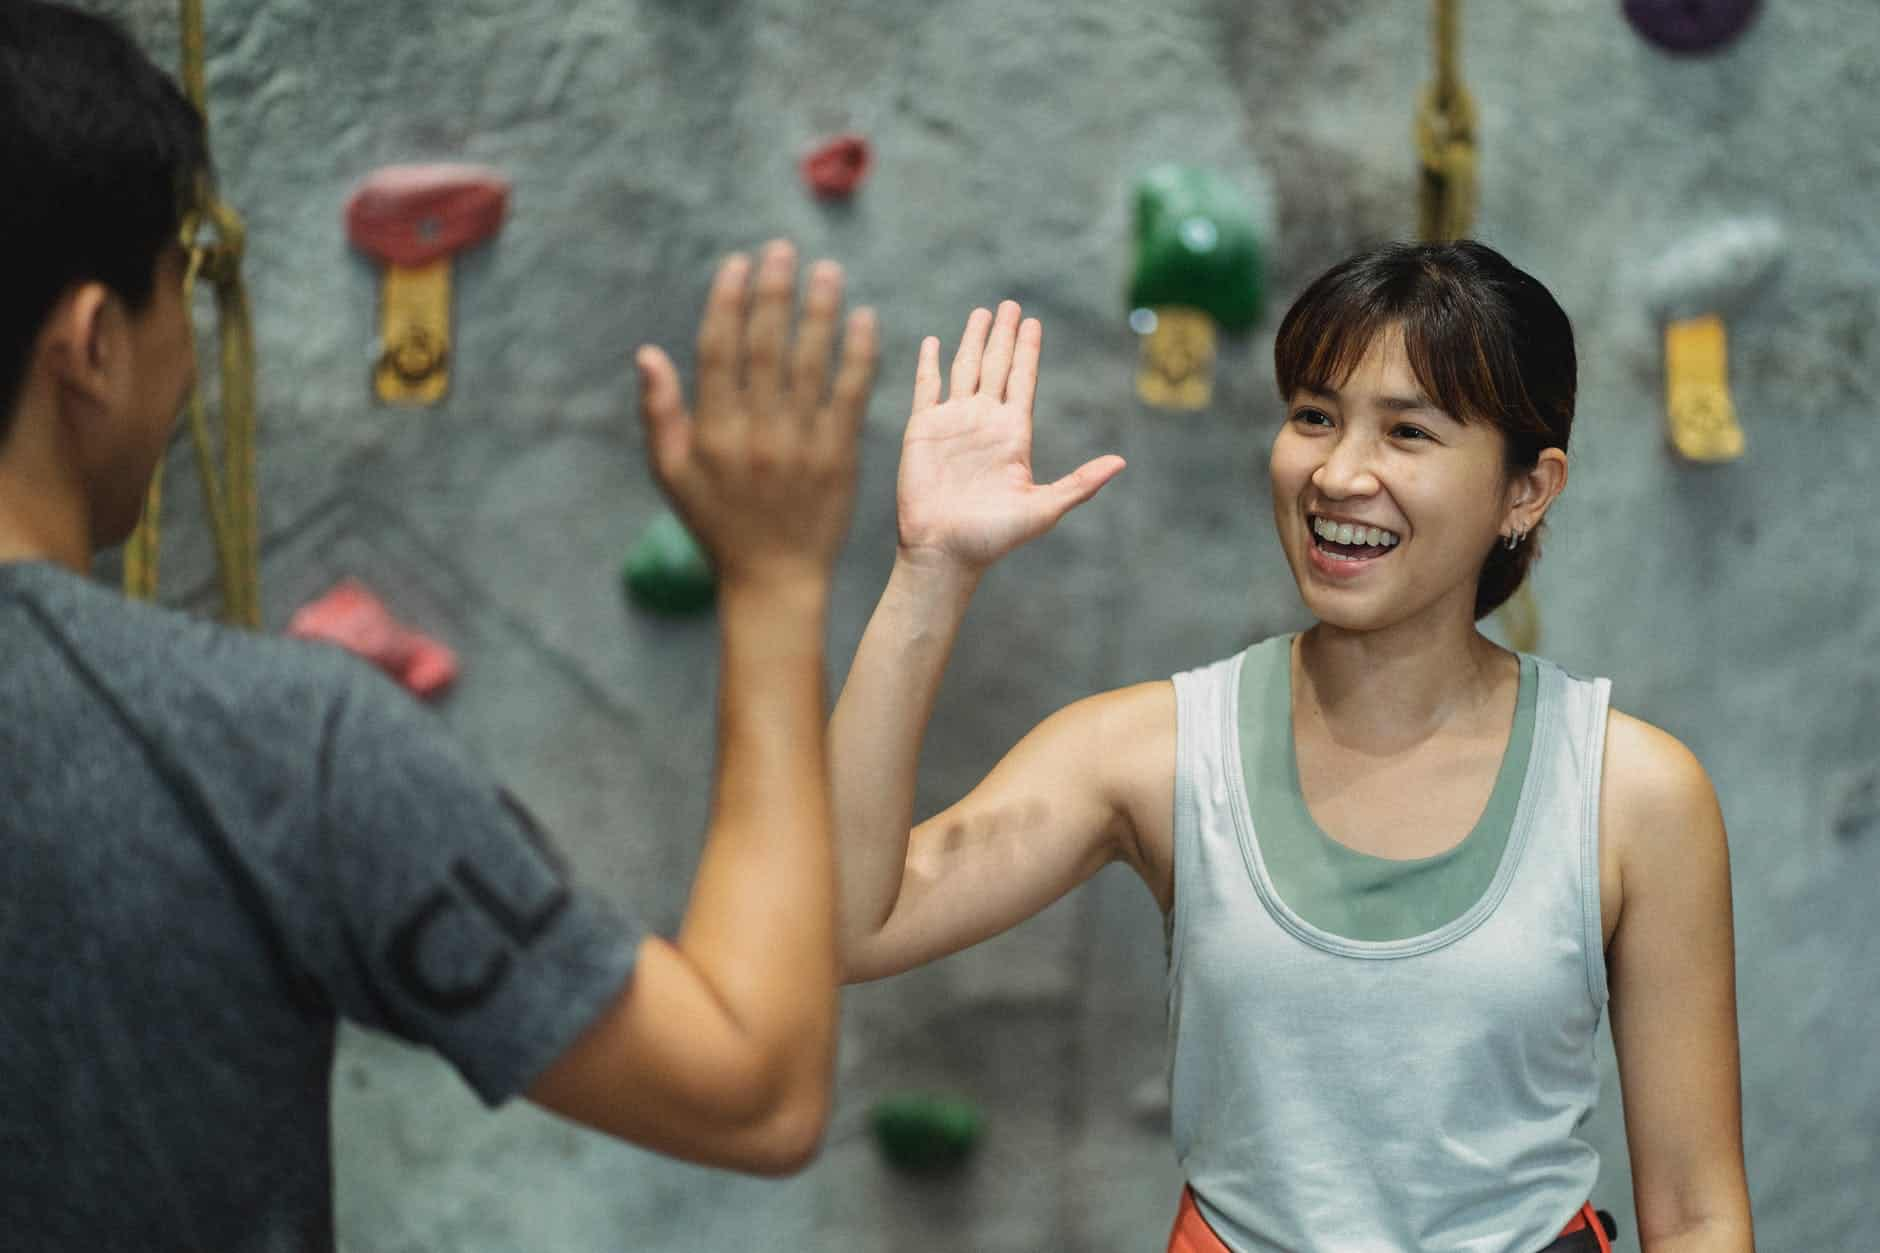 happy ethnic female climber with anonymous male friend giving high five in gym